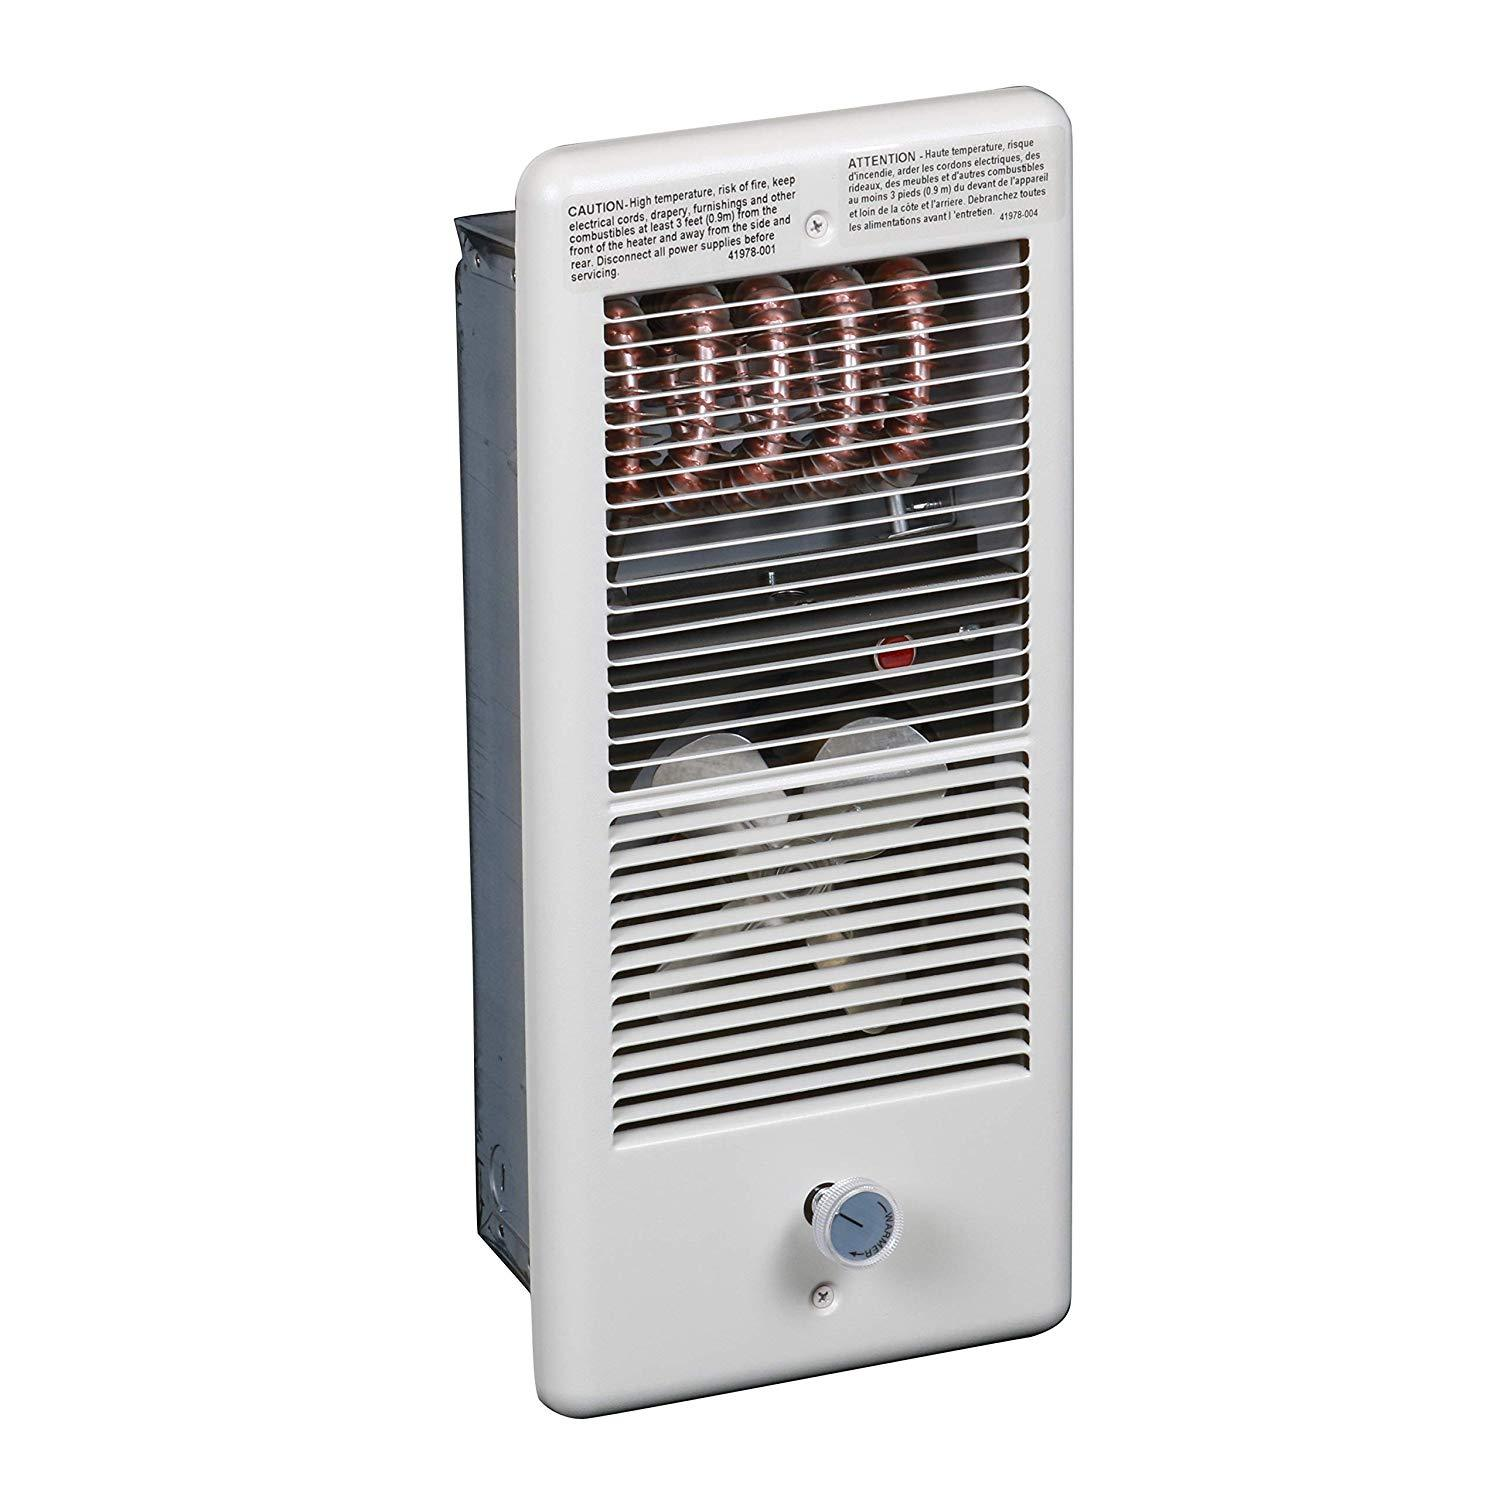 TPI 2000/1500W 240/208V 4300 Series Low Profile Fan Forced Wall Heater - 1 Pole Thermostat - White w/ Box - HF4320TRPW